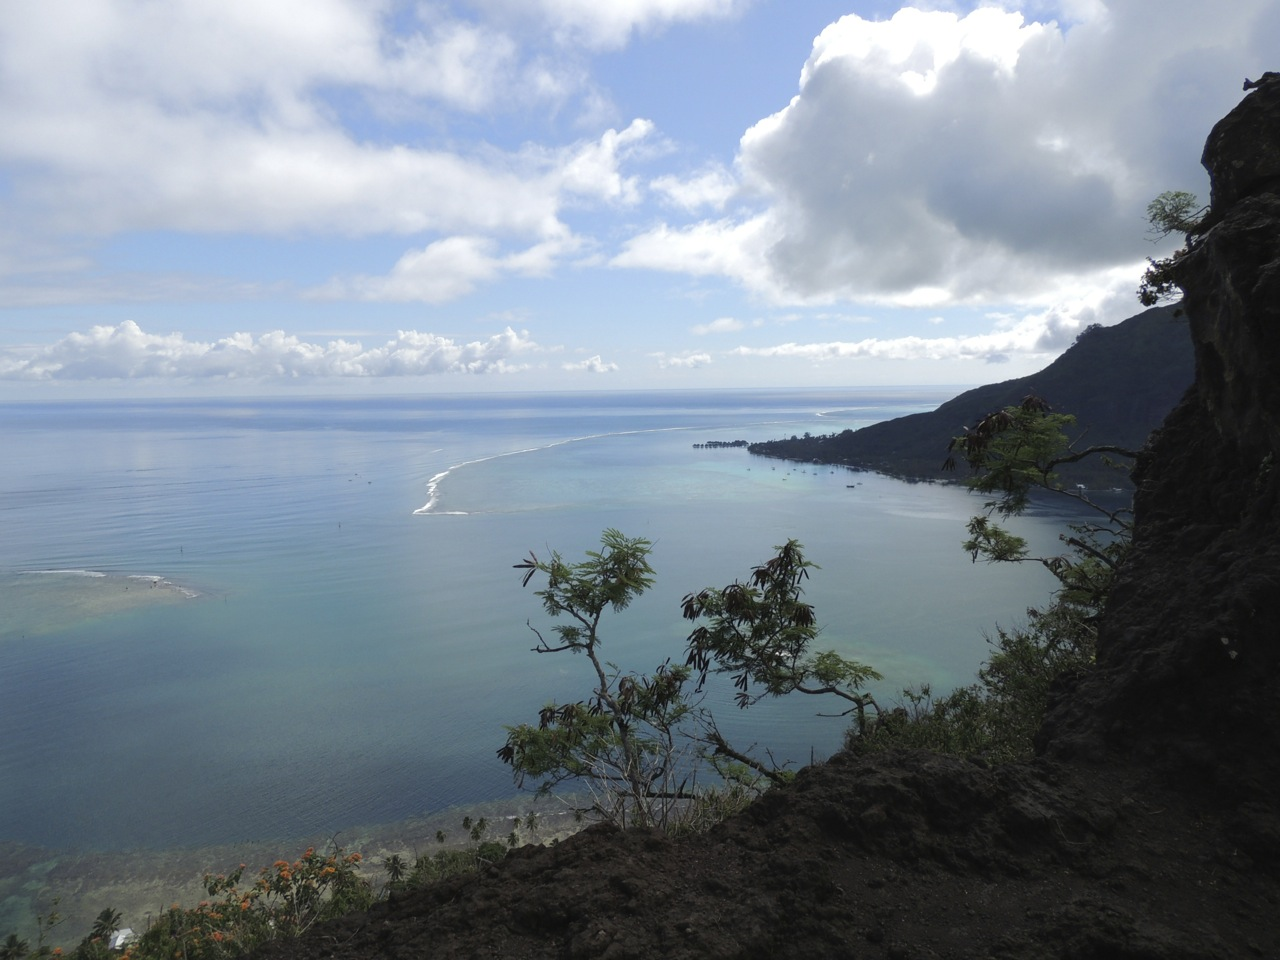 Another view of Moorea from the peak of Magic Mountain